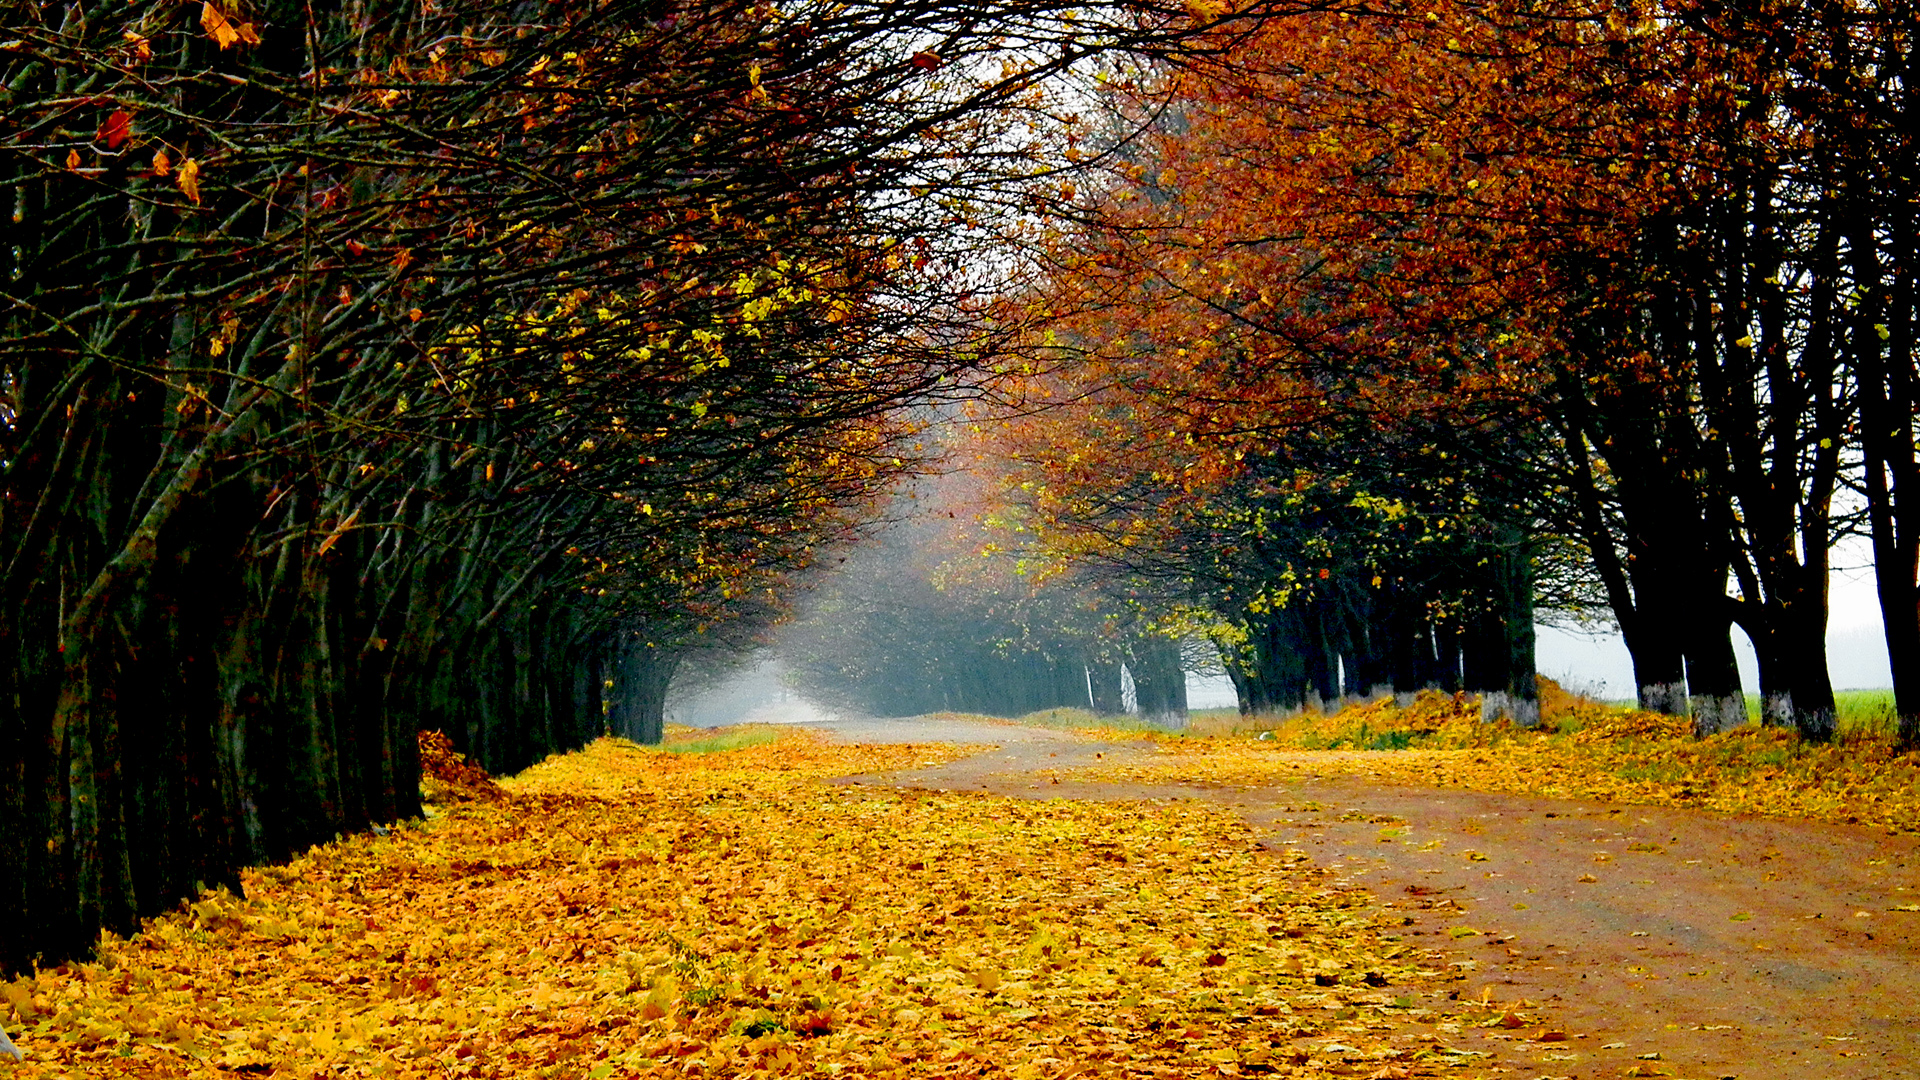 Gloomy Fall Wallpaper Autumn Scenery Wallpapers Pictures Images